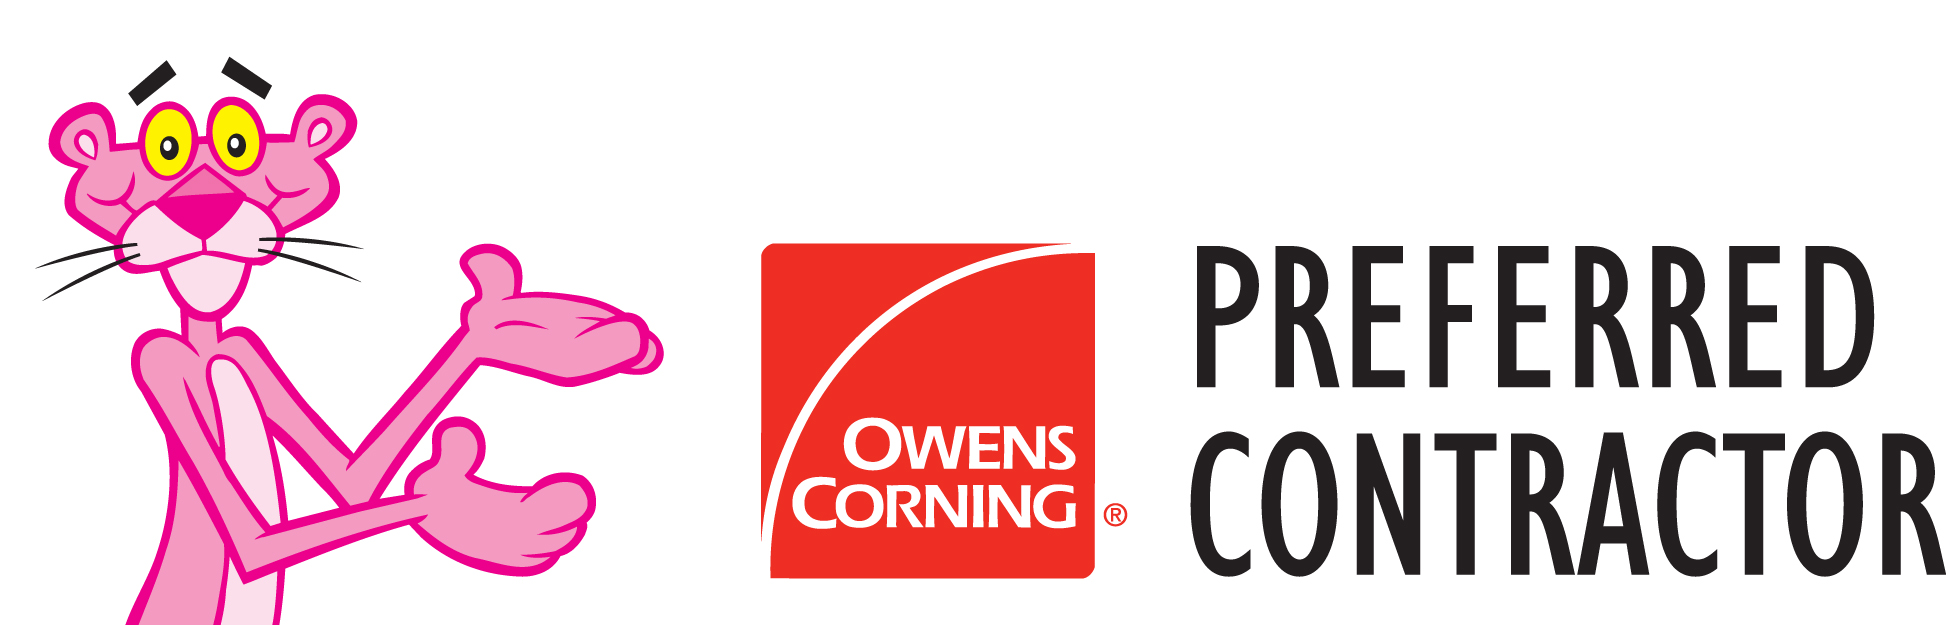 AJ Exteriors is an Owens Corning Preferred Contractor